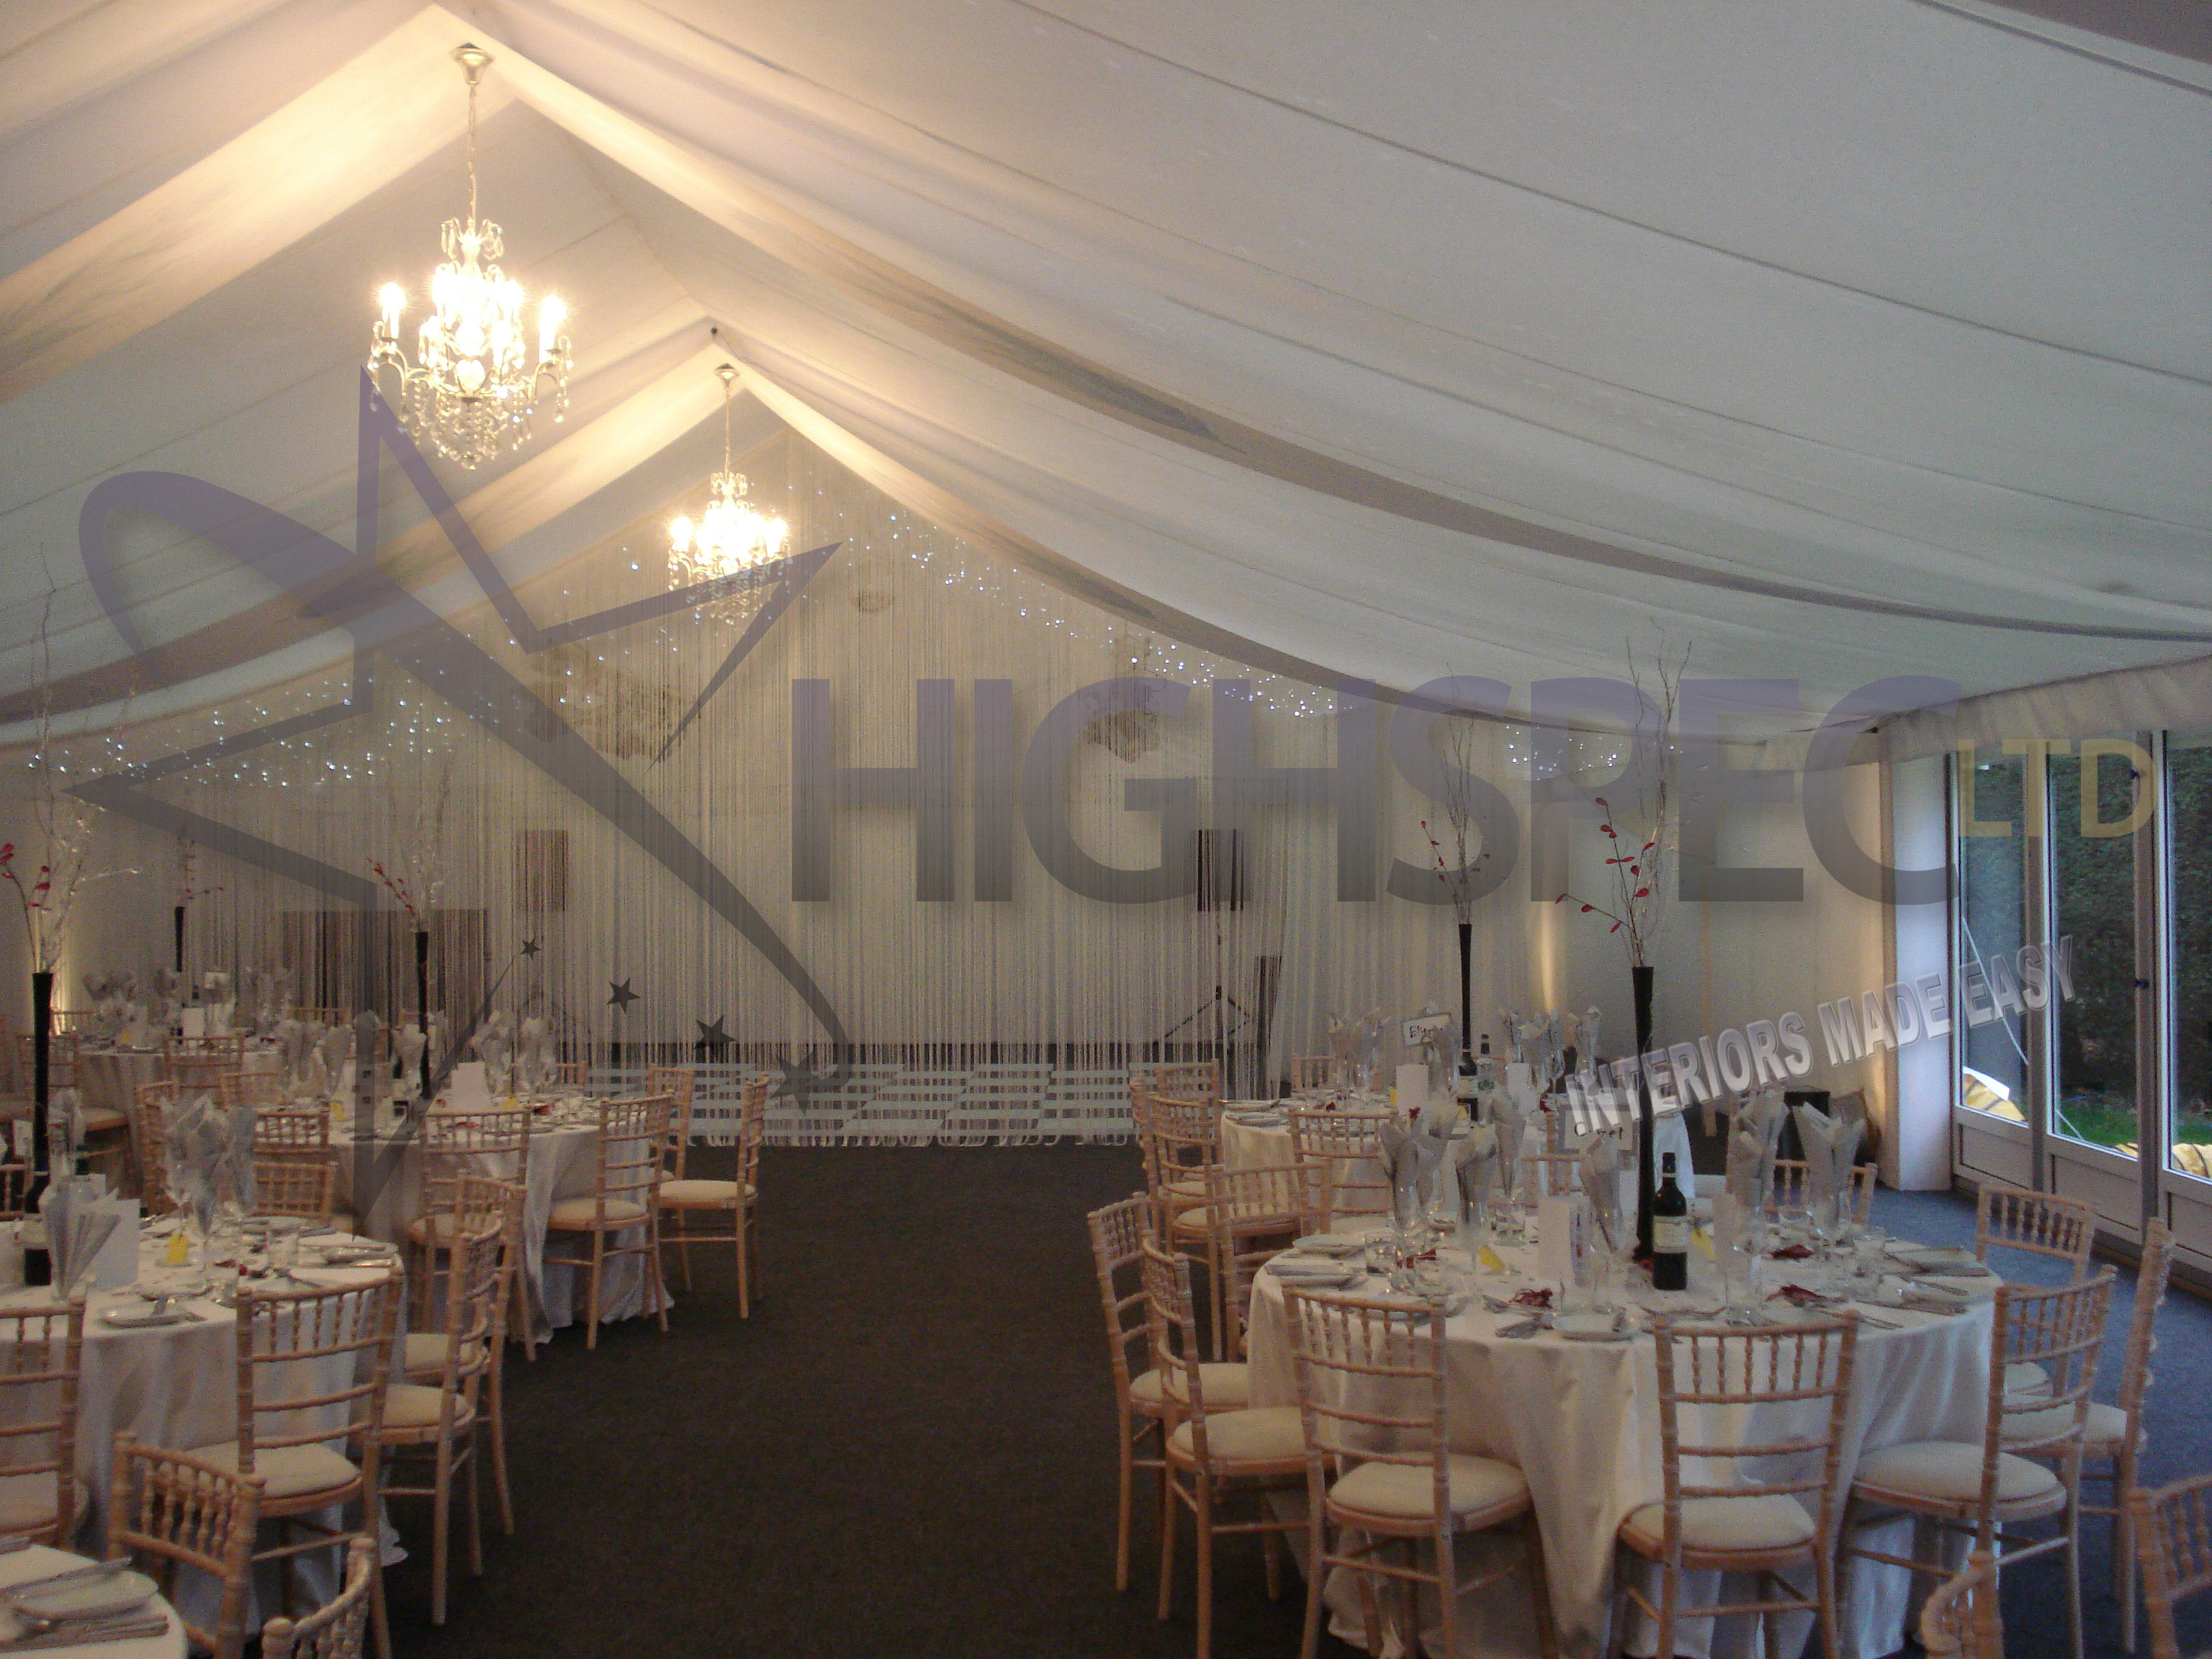 Marquee thread curtain decor